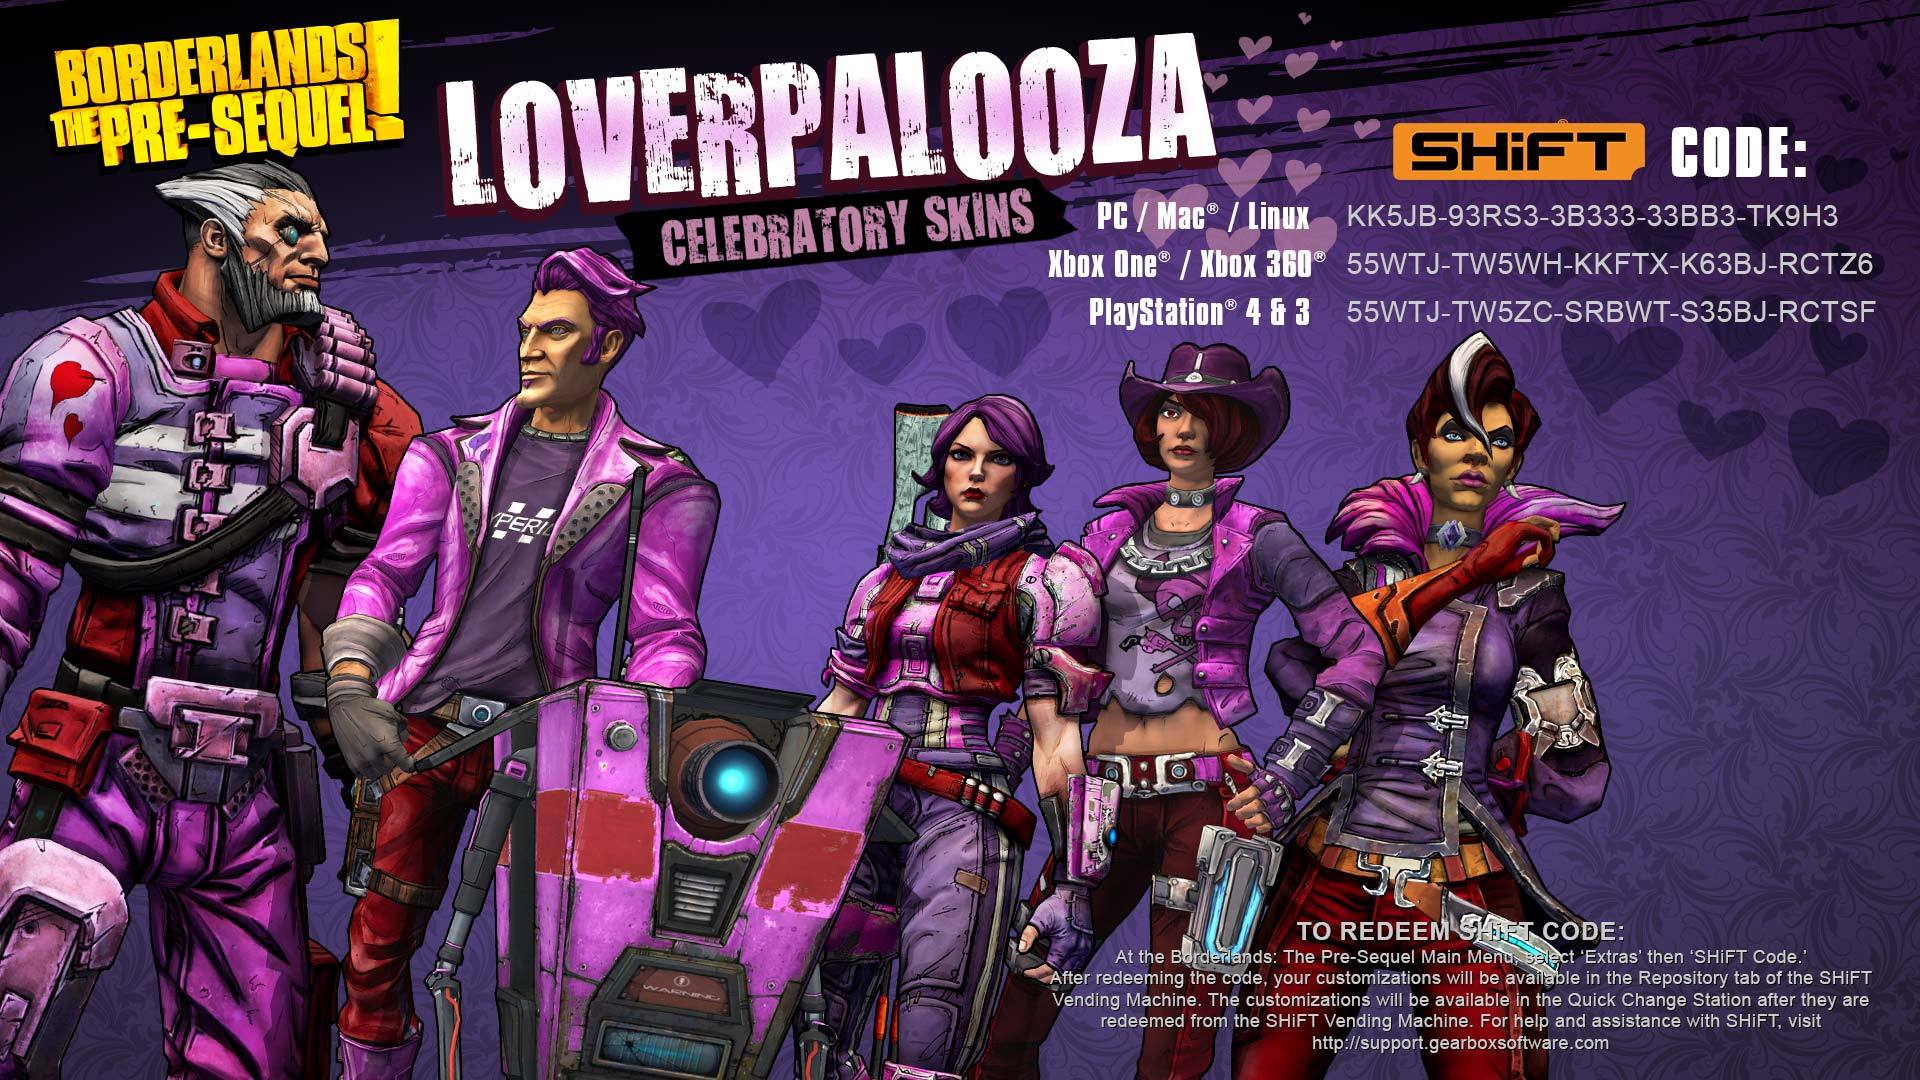 Borderlands The Pre-Sequel LOVERPALOOZA Skins - MentalMars Borderlands The Pre Sequel Shift Codes